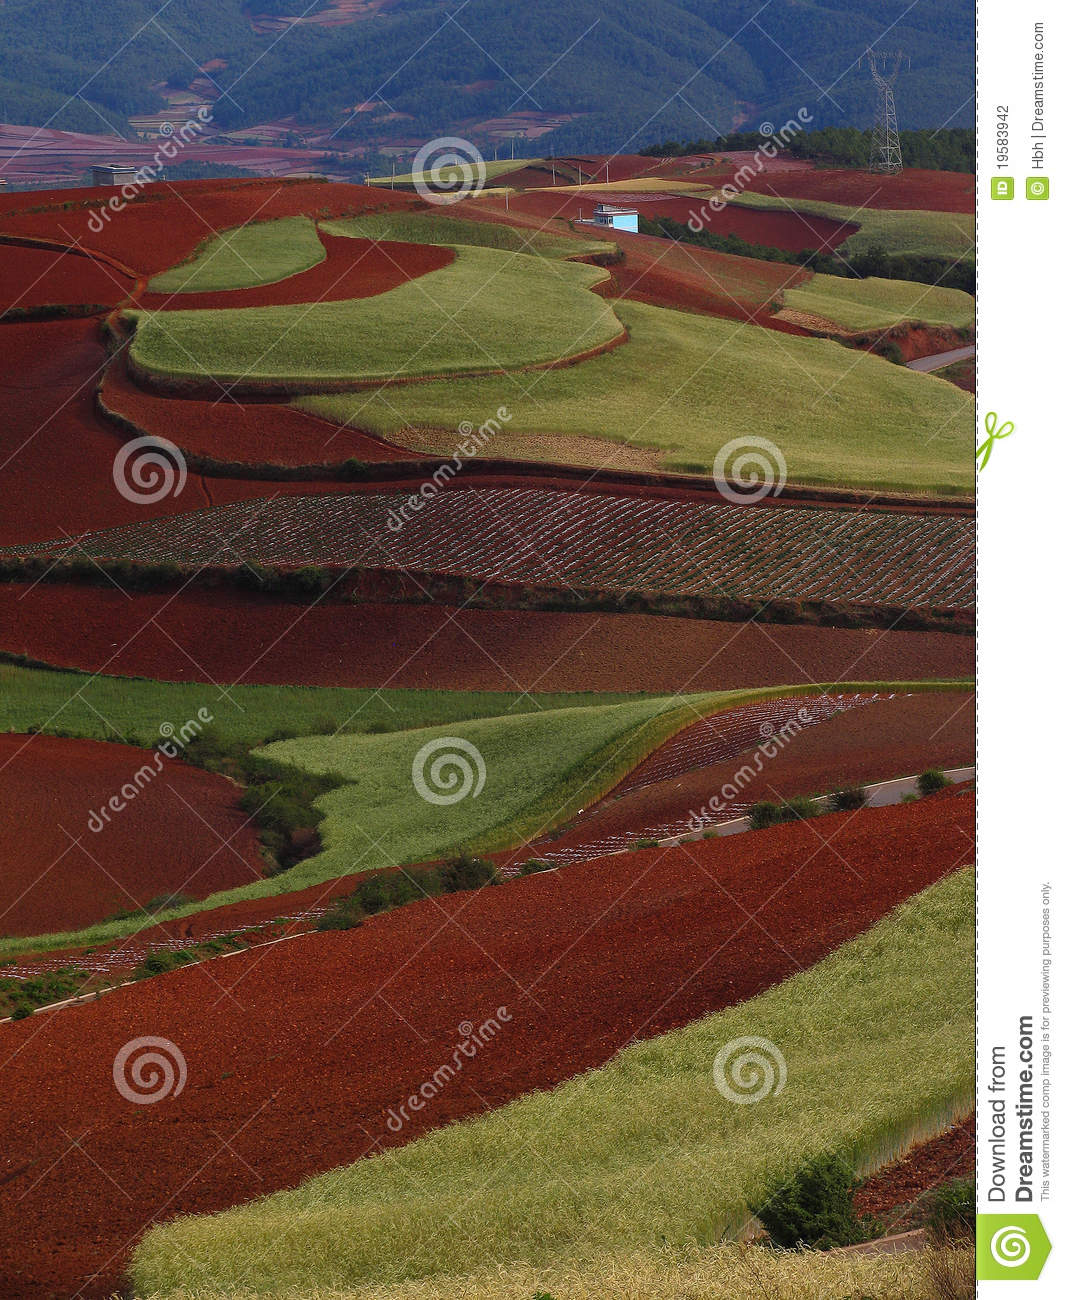 Yunnan red soil dry stock photography image 19583942 for What does soil contain